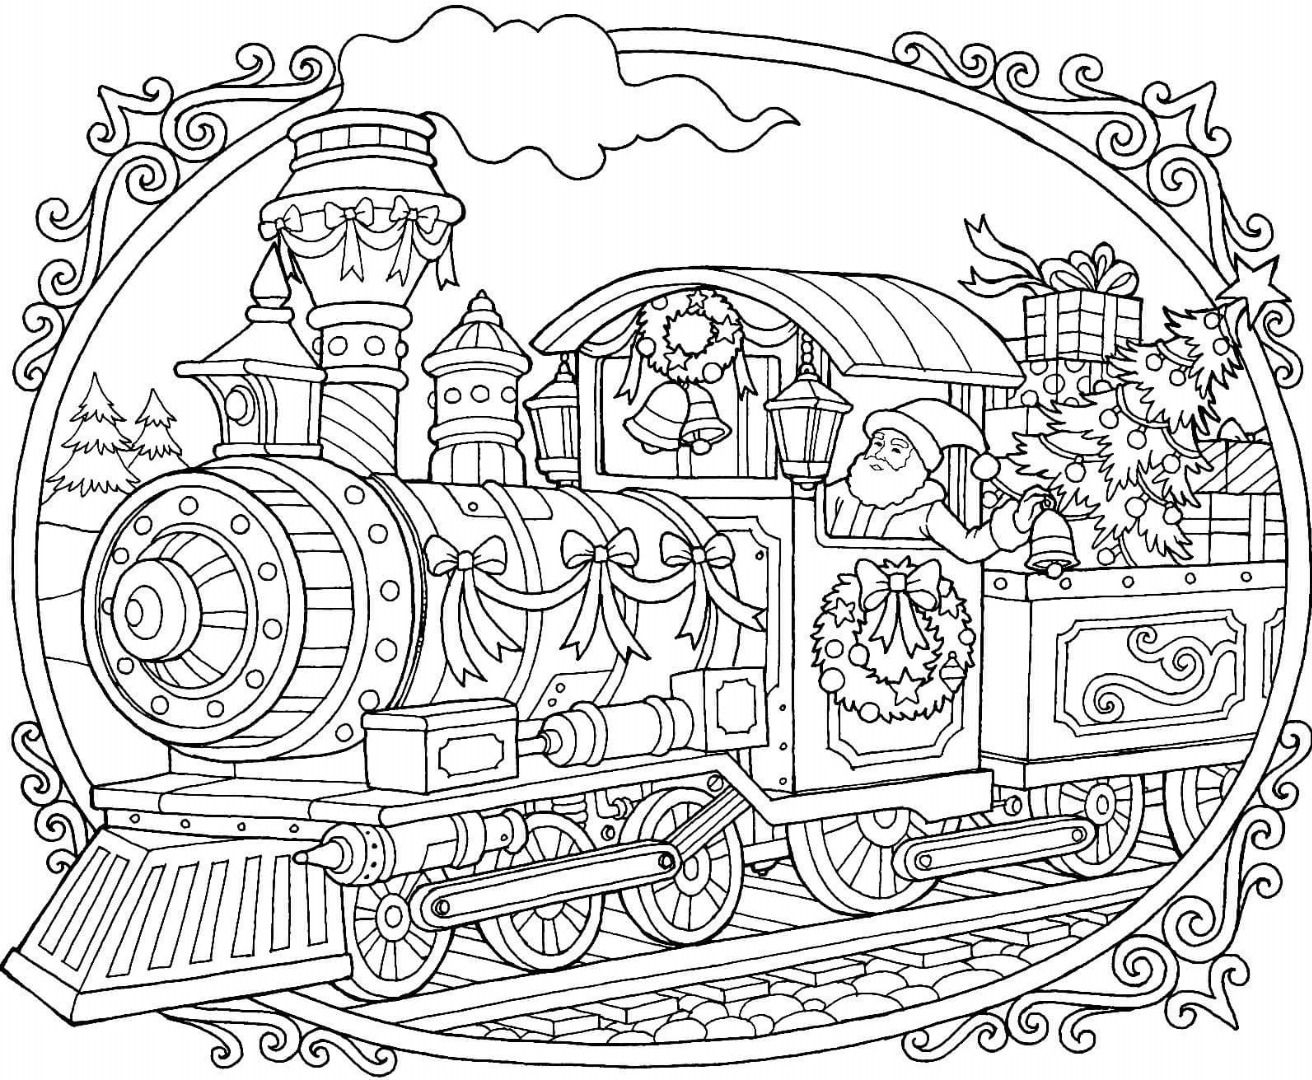 mary engelbreit coloring pages 32 mary engelbreit coloring book in 2020 coloring books mary coloring pages engelbreit